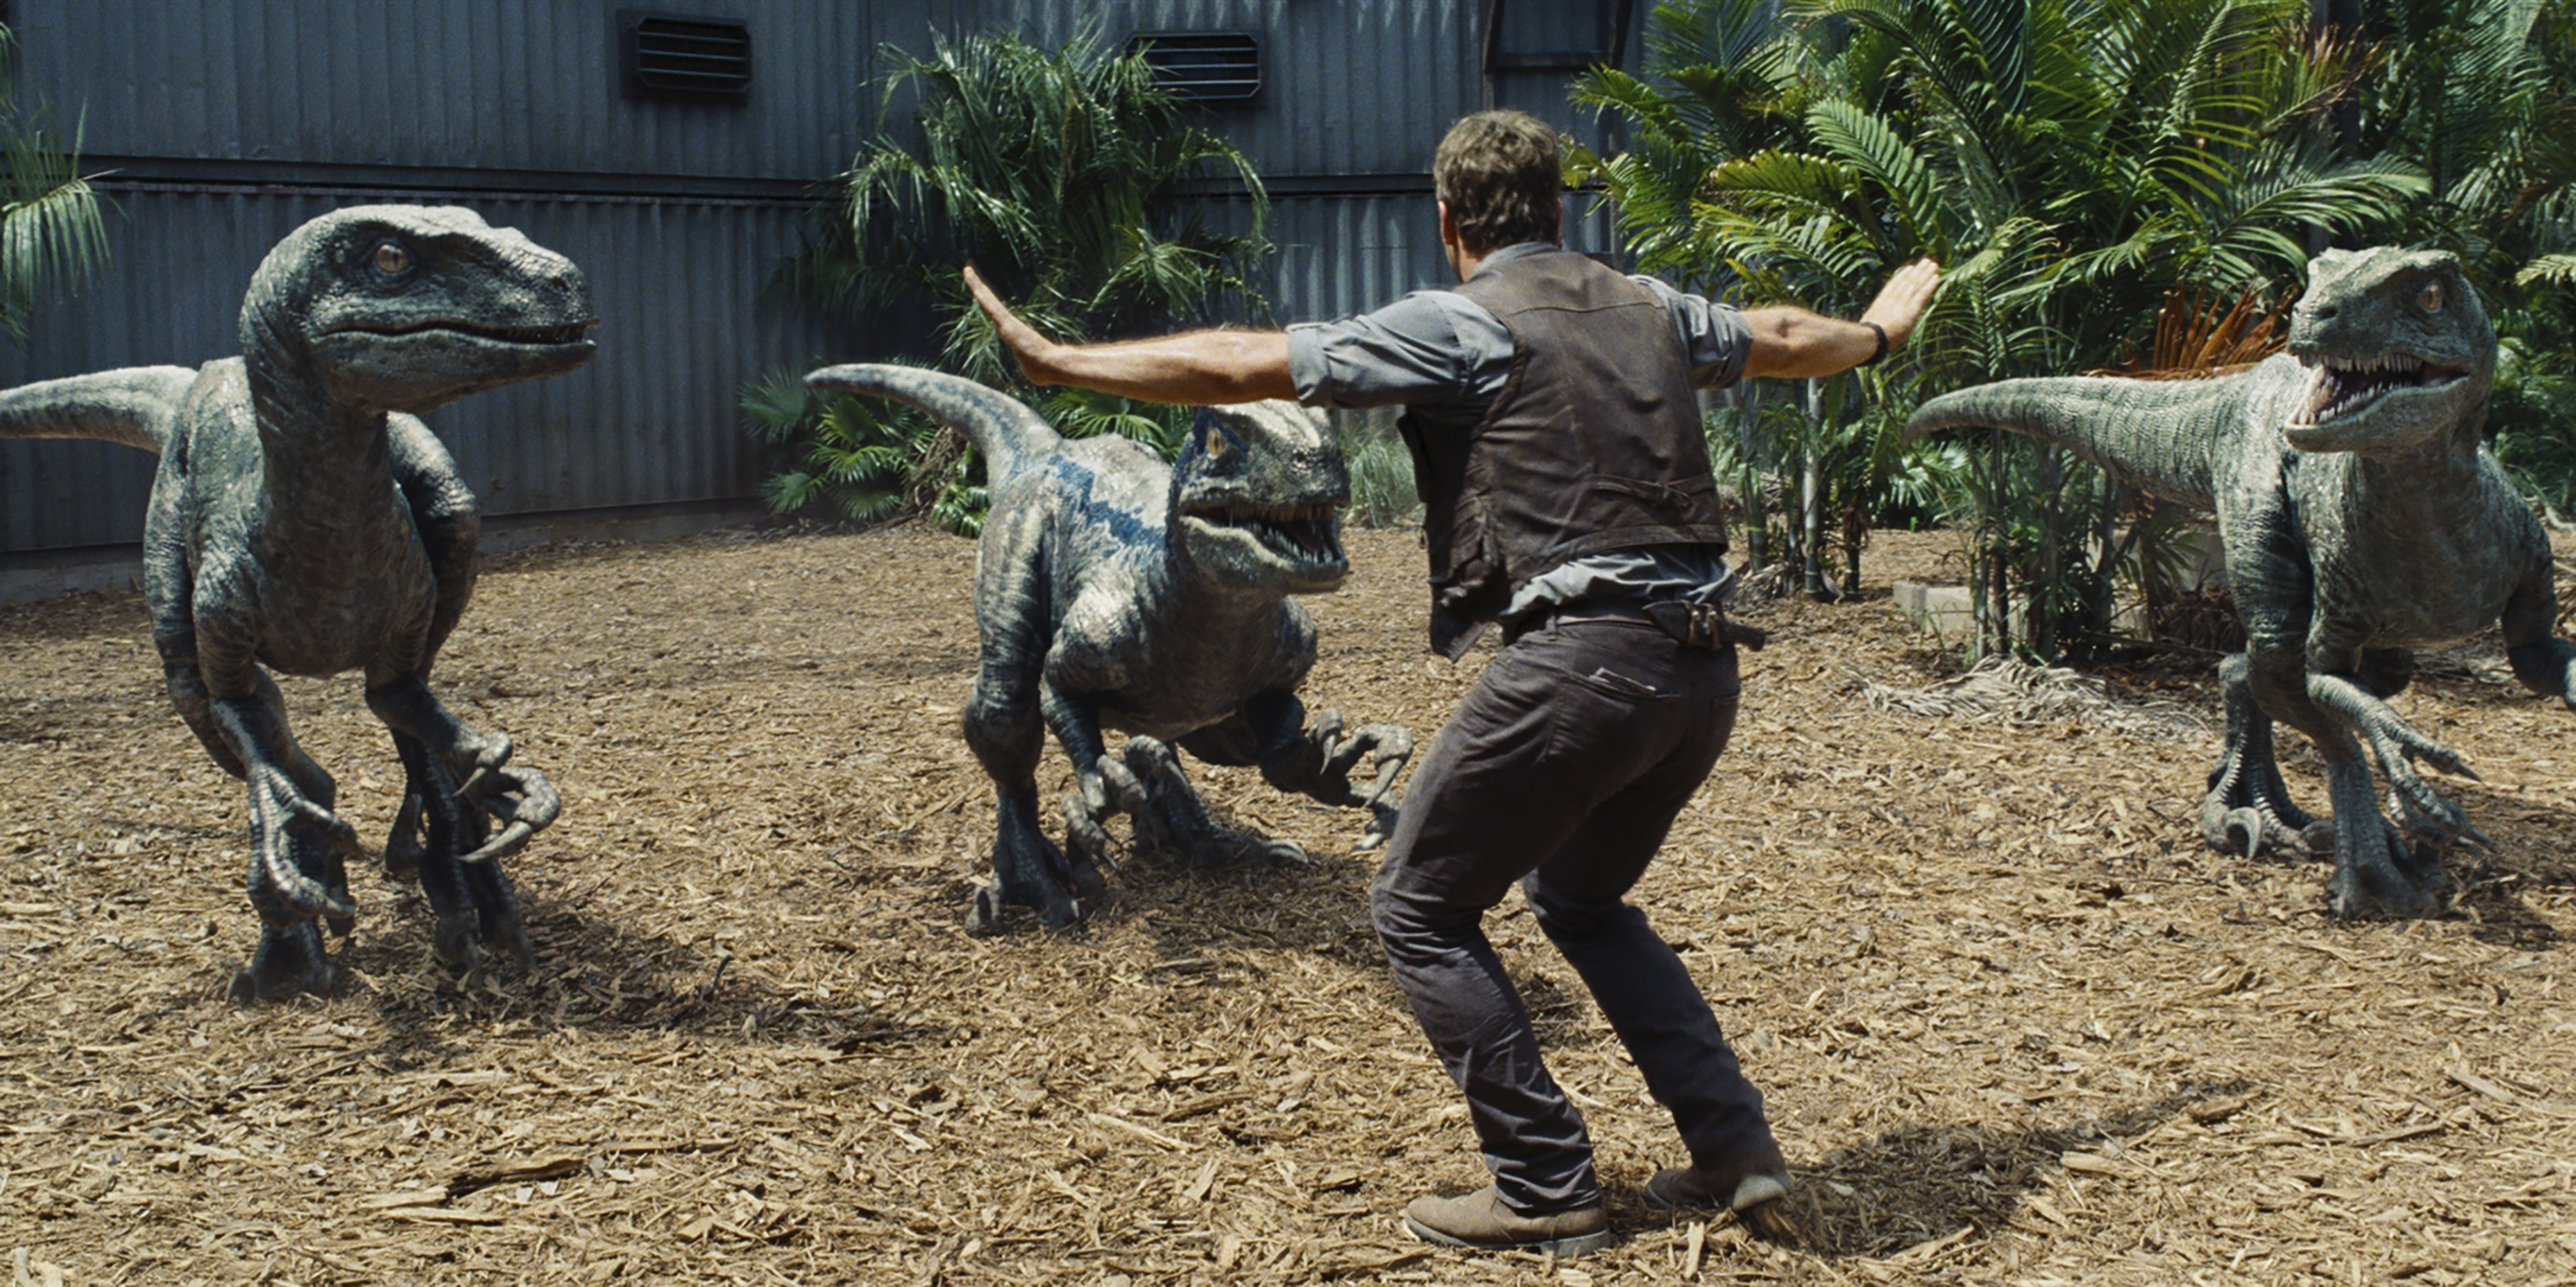 Chris Pratt as Owen in a scene from Universal Pictures' Jurassic World.